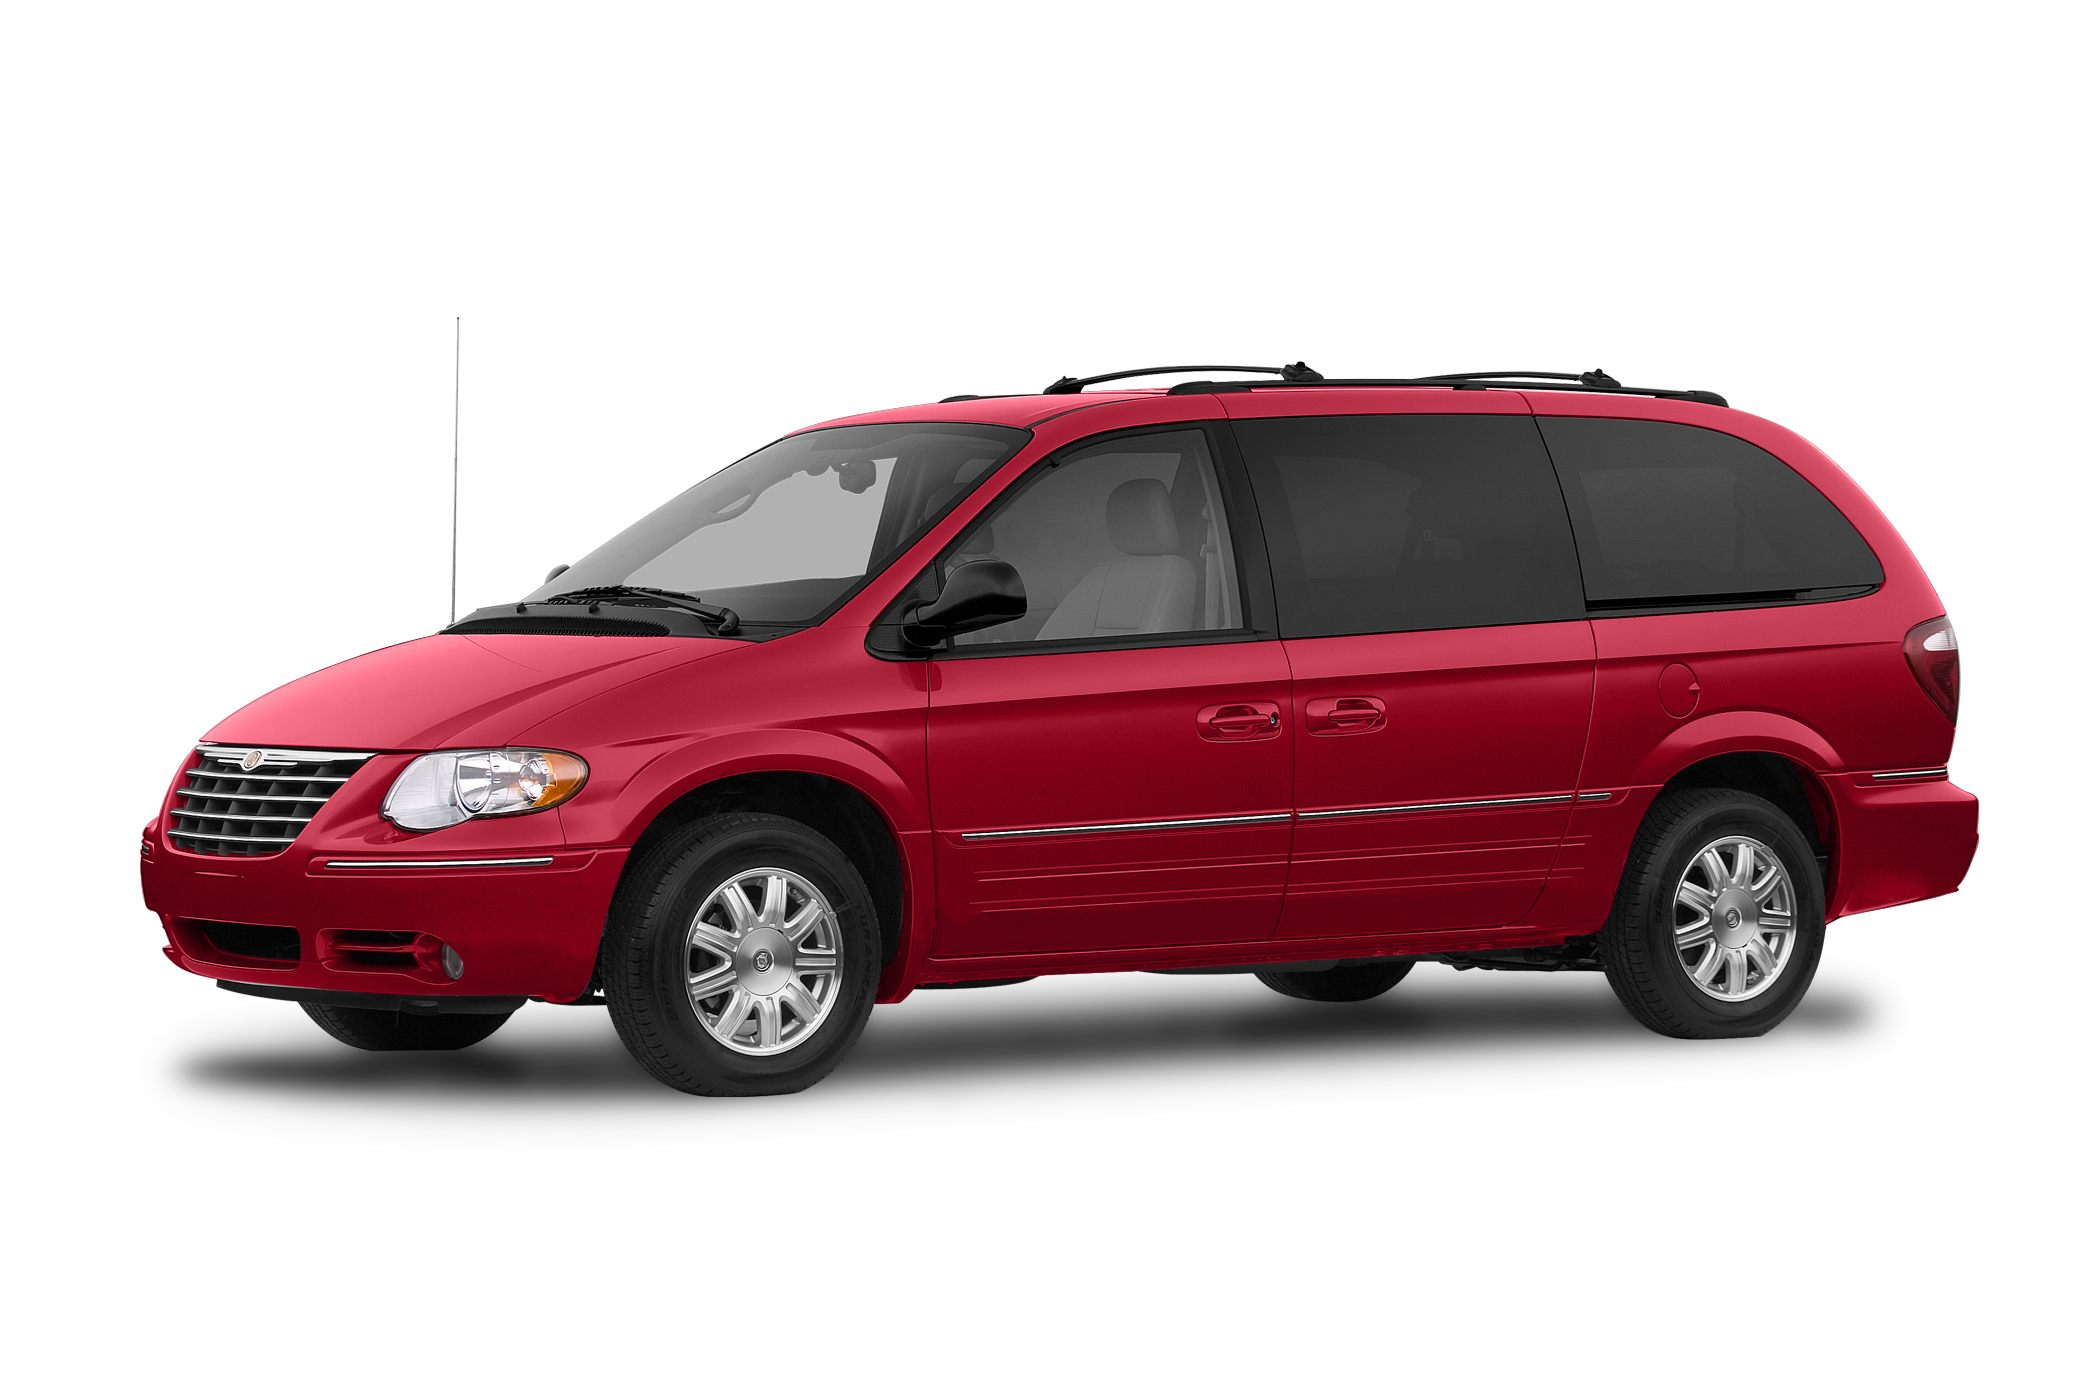 USB70CDV081B0101 Great Description About 2012 Chrysler town and Country Recalls with Amazing Photos Cars Review